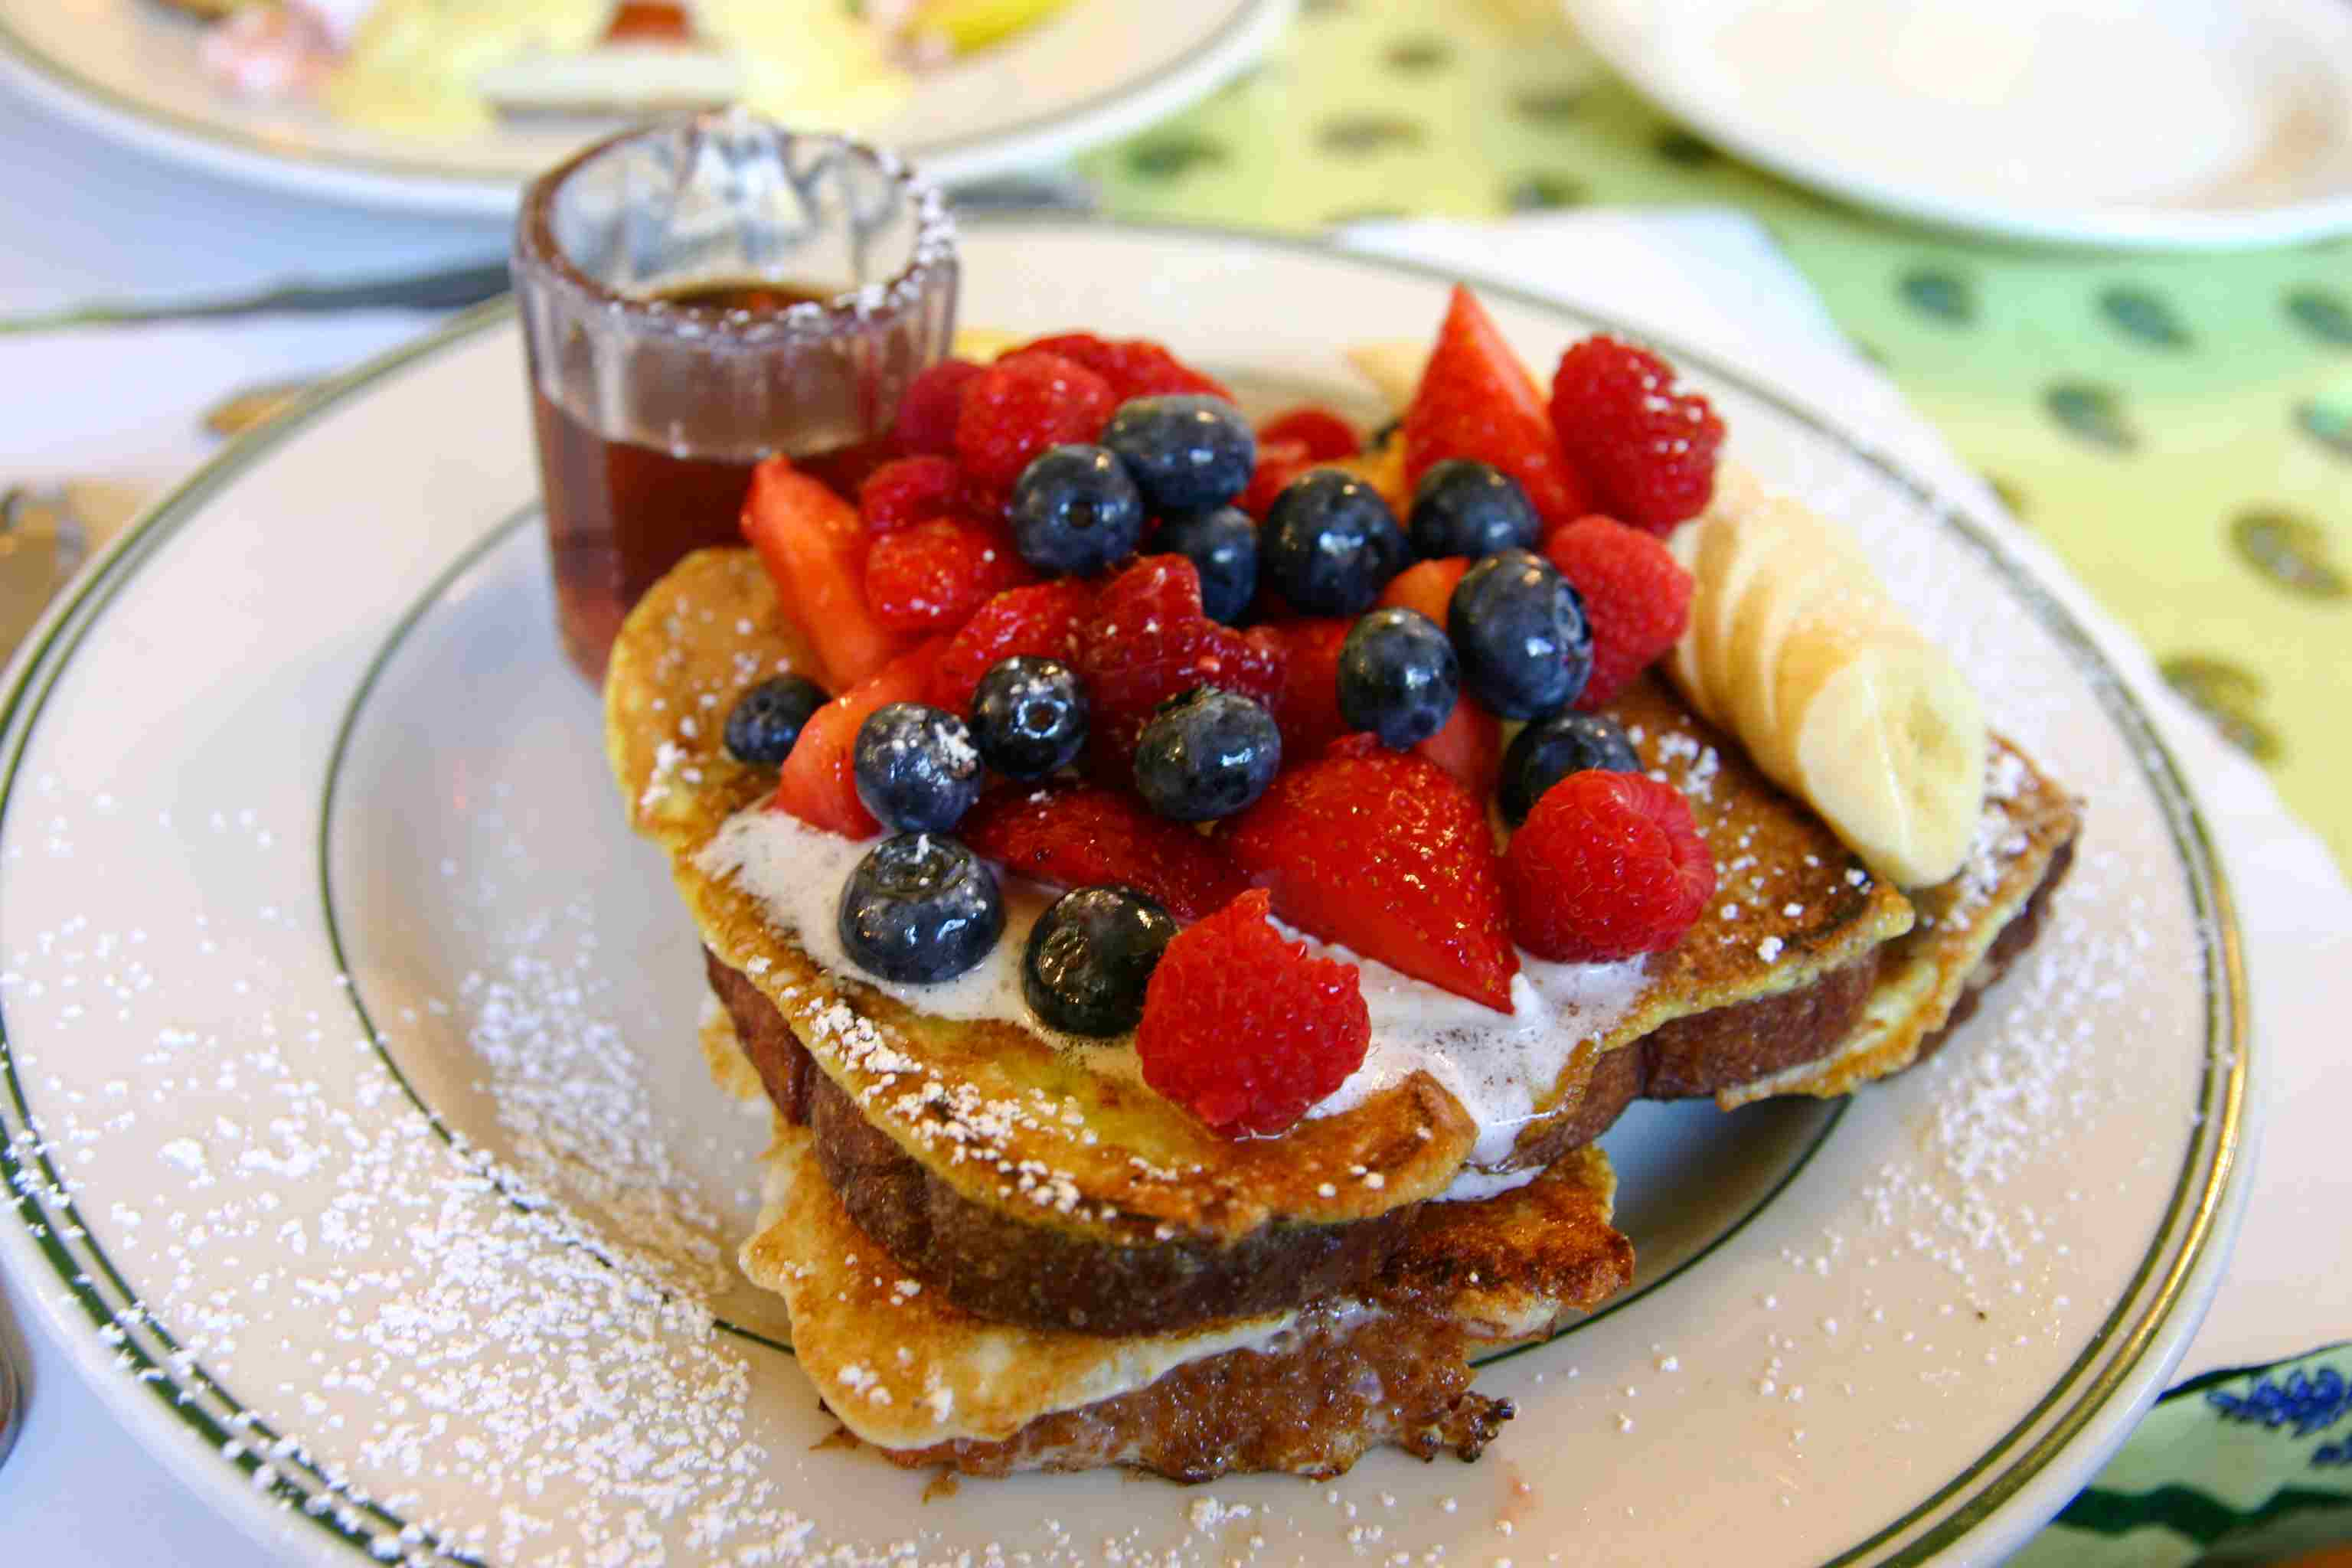 French toast with fruit on top